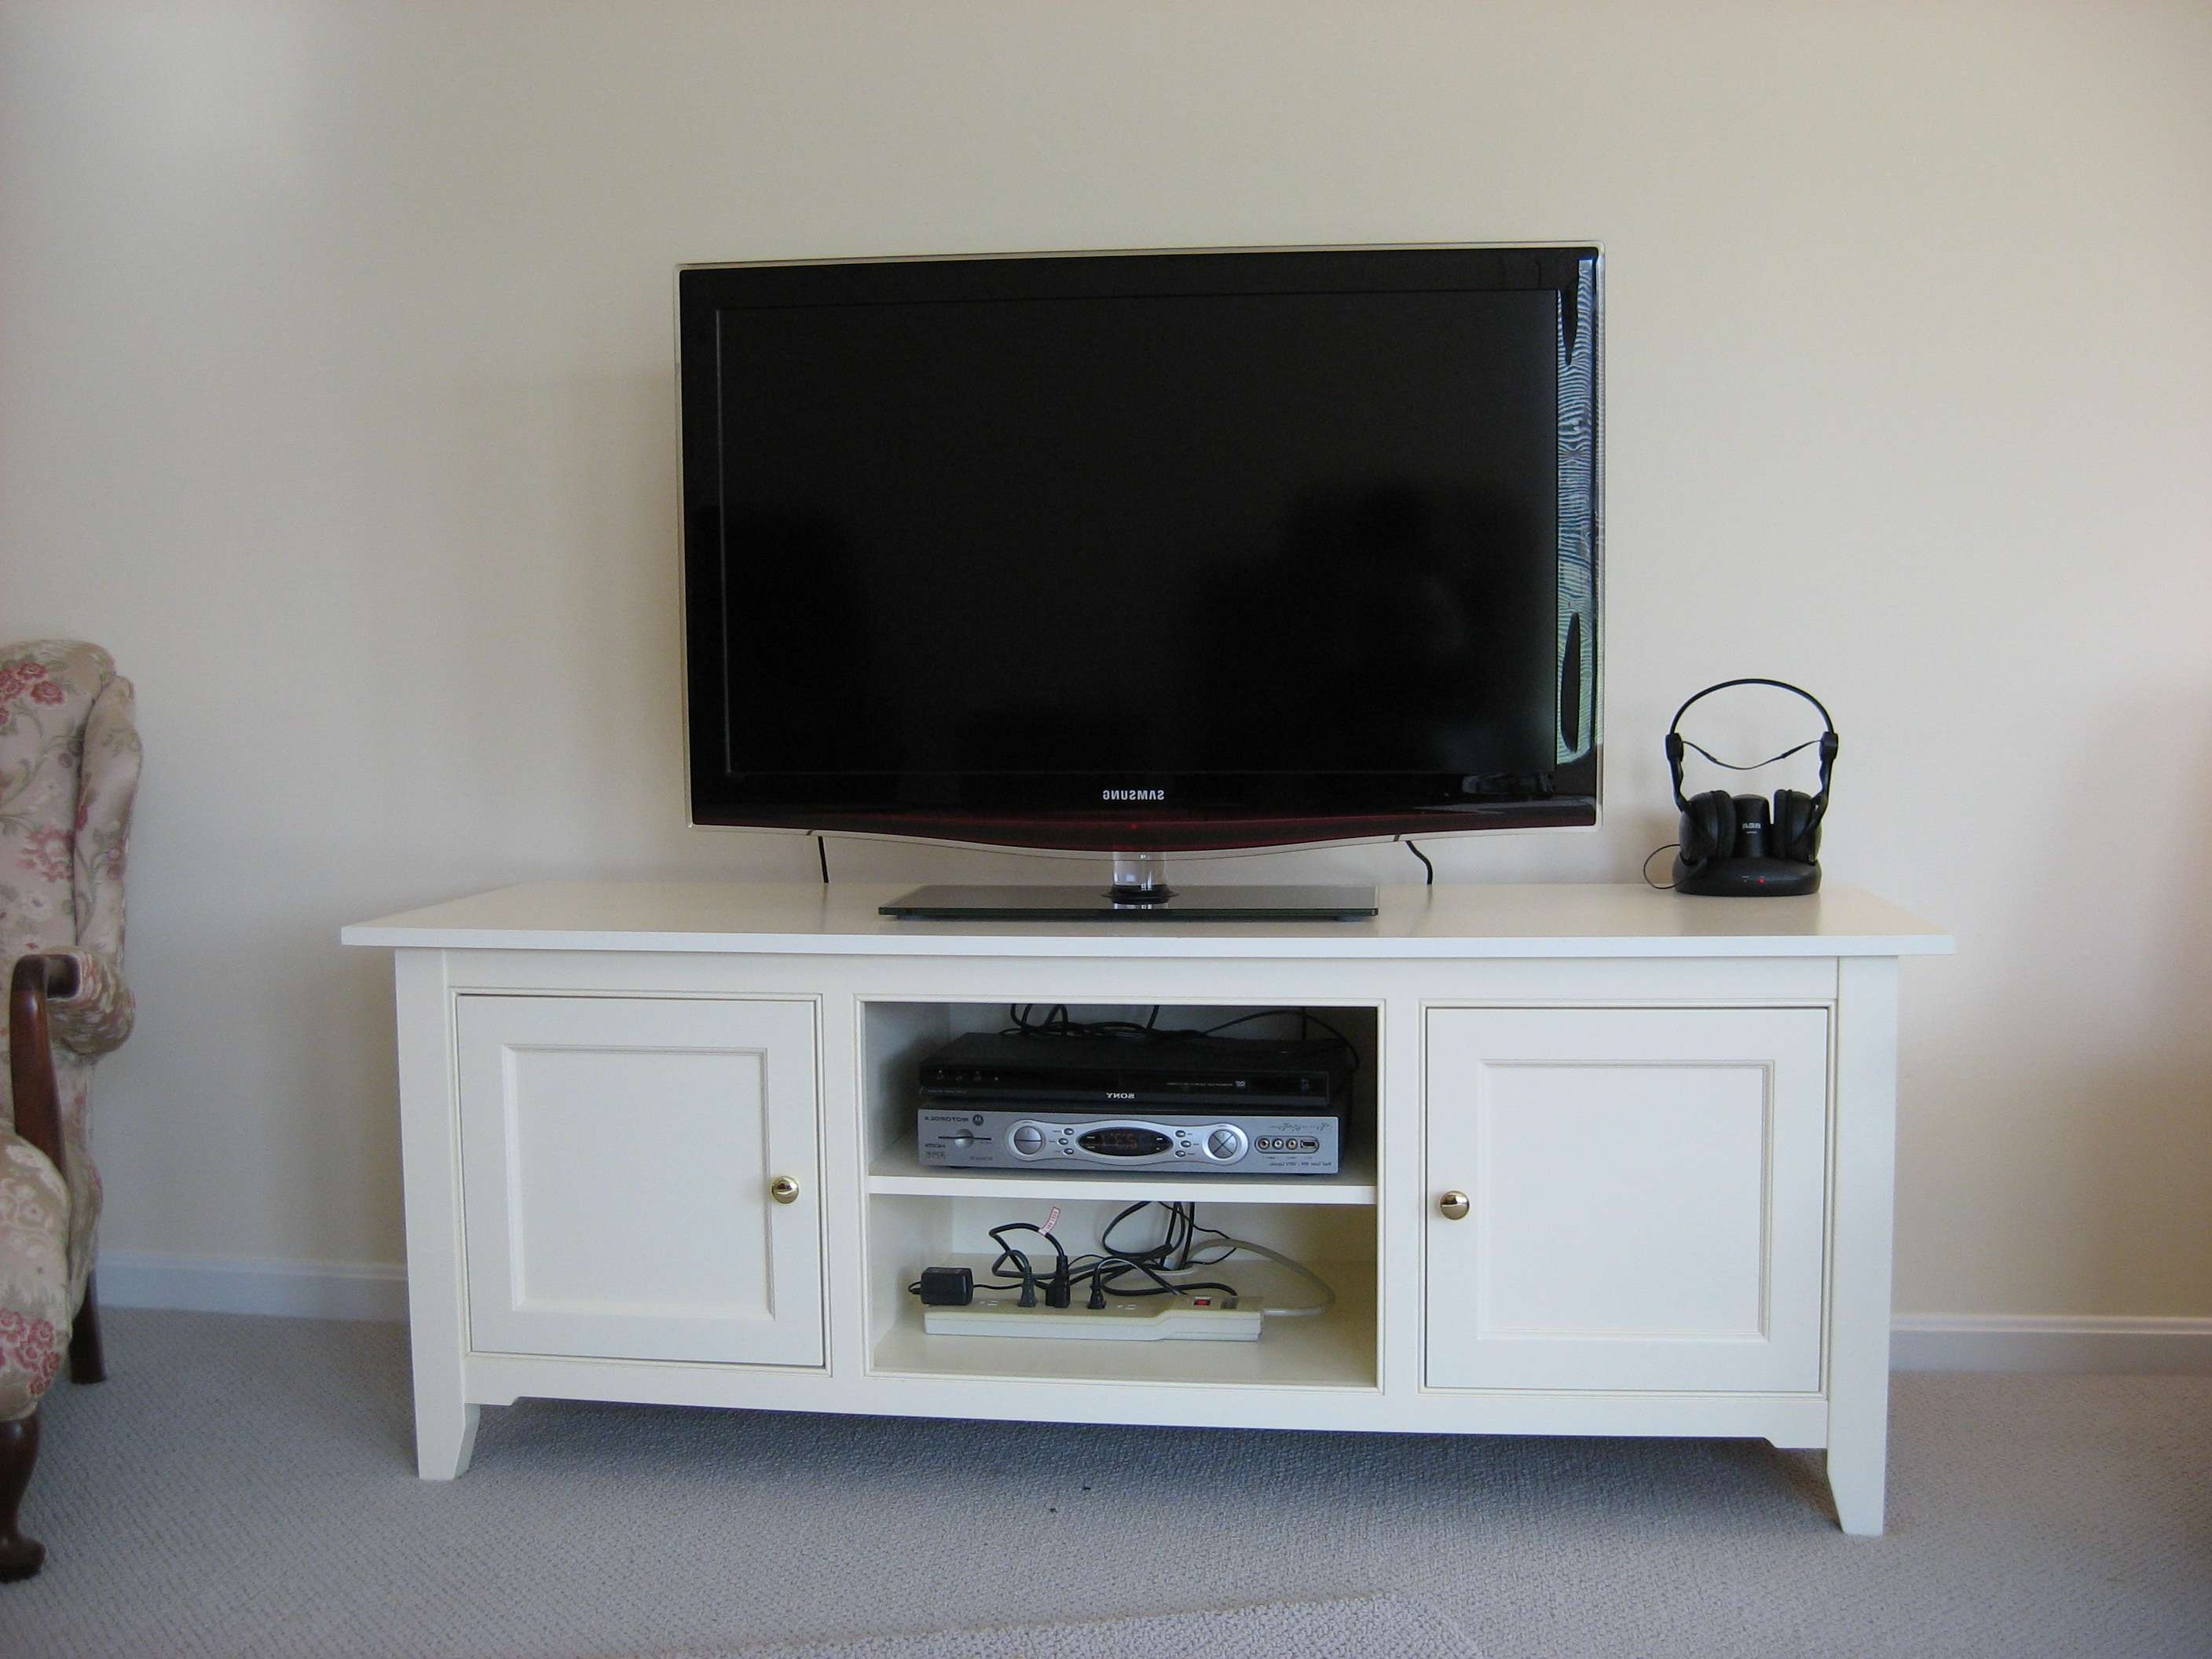 Living Room Furniture Classy White Wooden Vintage Modern Tv Stand Pertaining To Vintage Tv Stands For Sale (View 6 of 15)